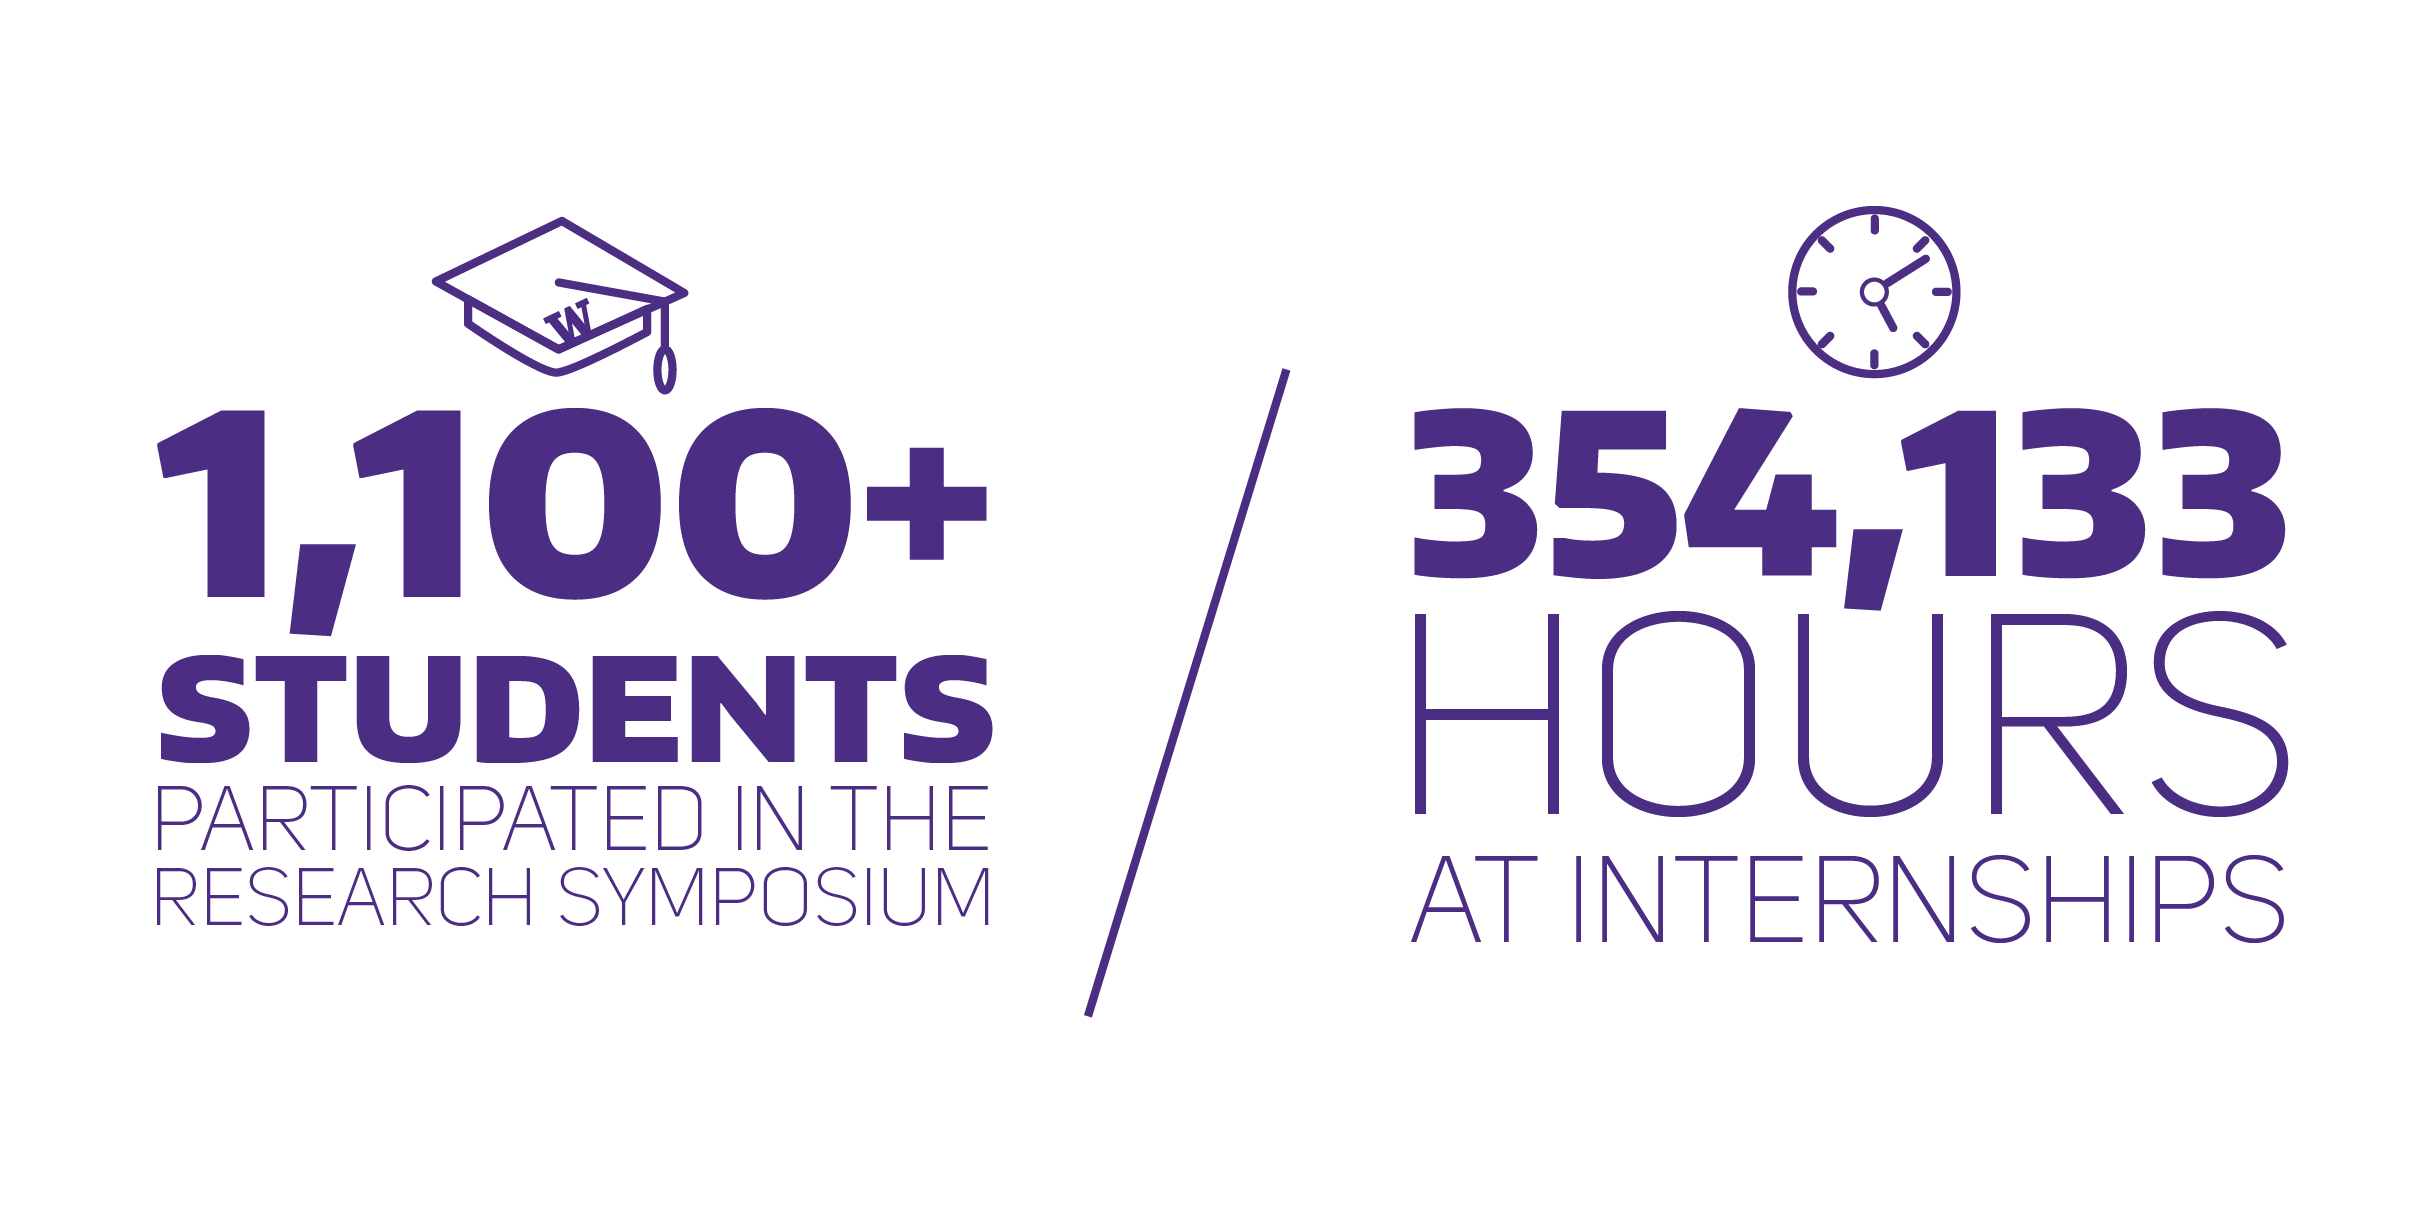 Research Symposium 1,100+ students Internships 354,133 hours